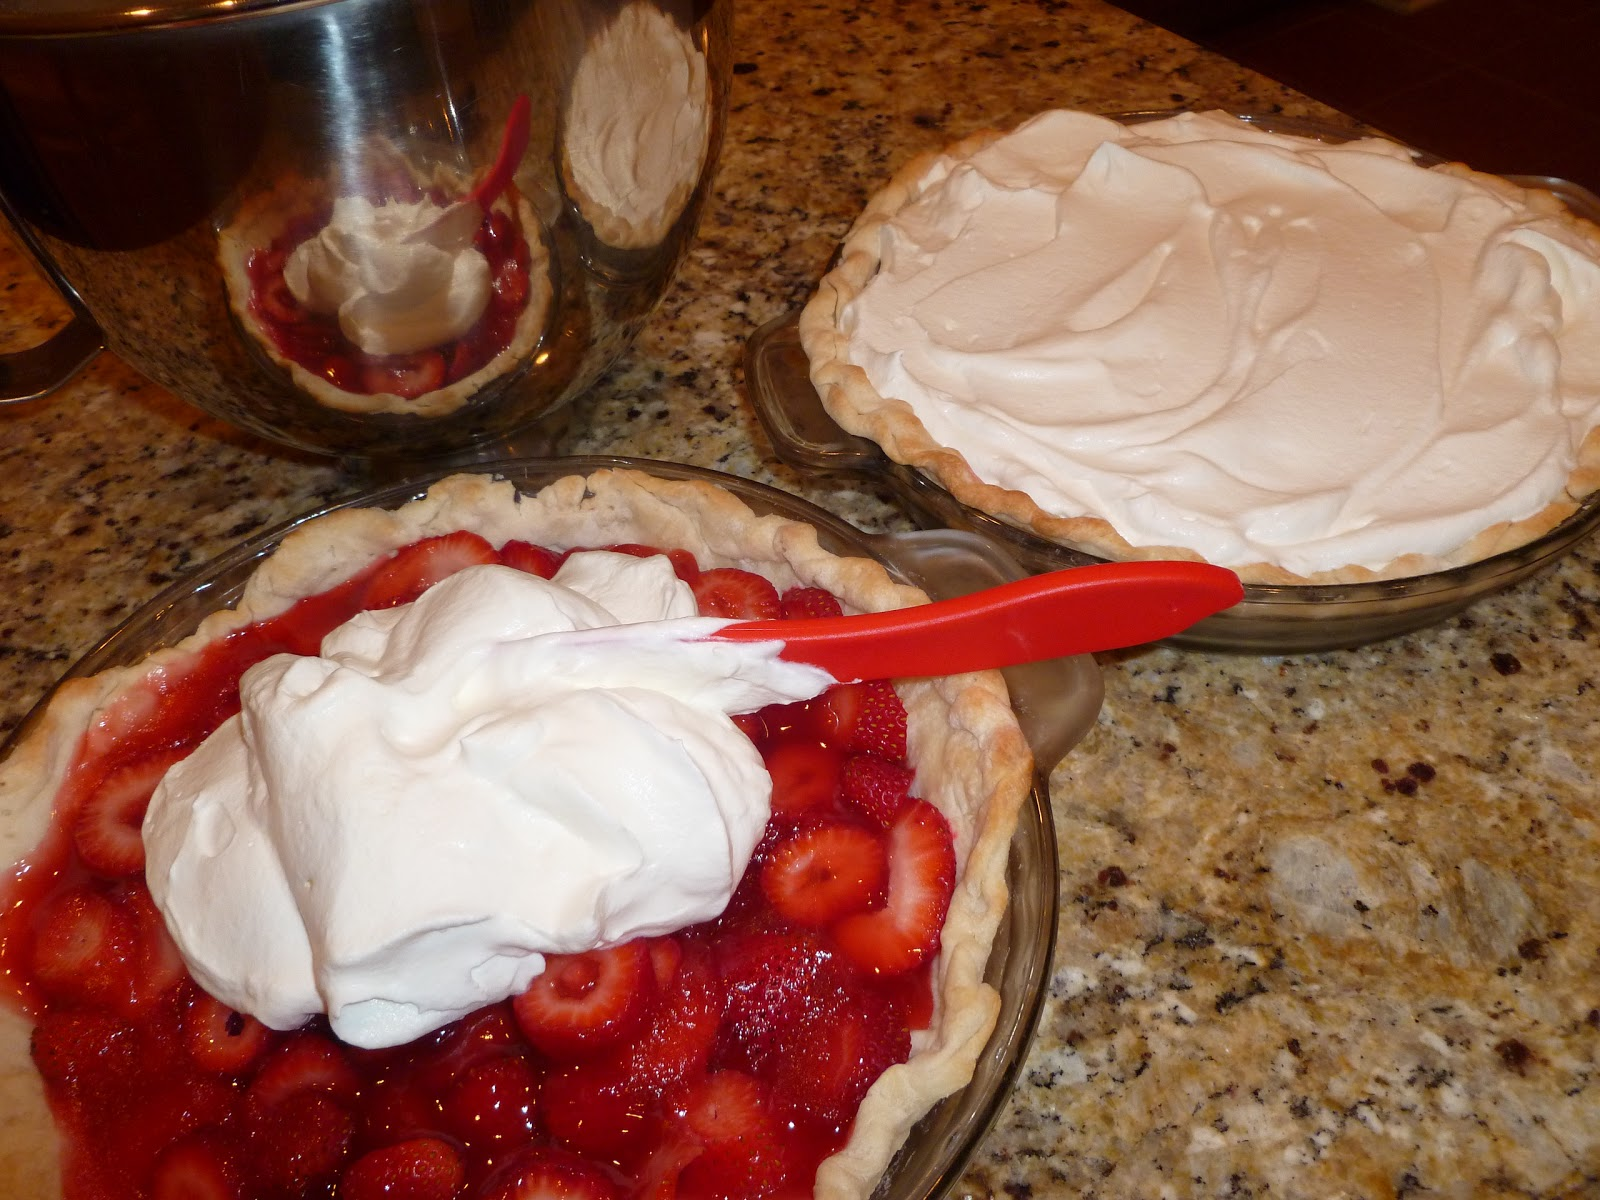 ... to Bake and Cook!: Oh my Strawberry Pie with real Whipped Cream